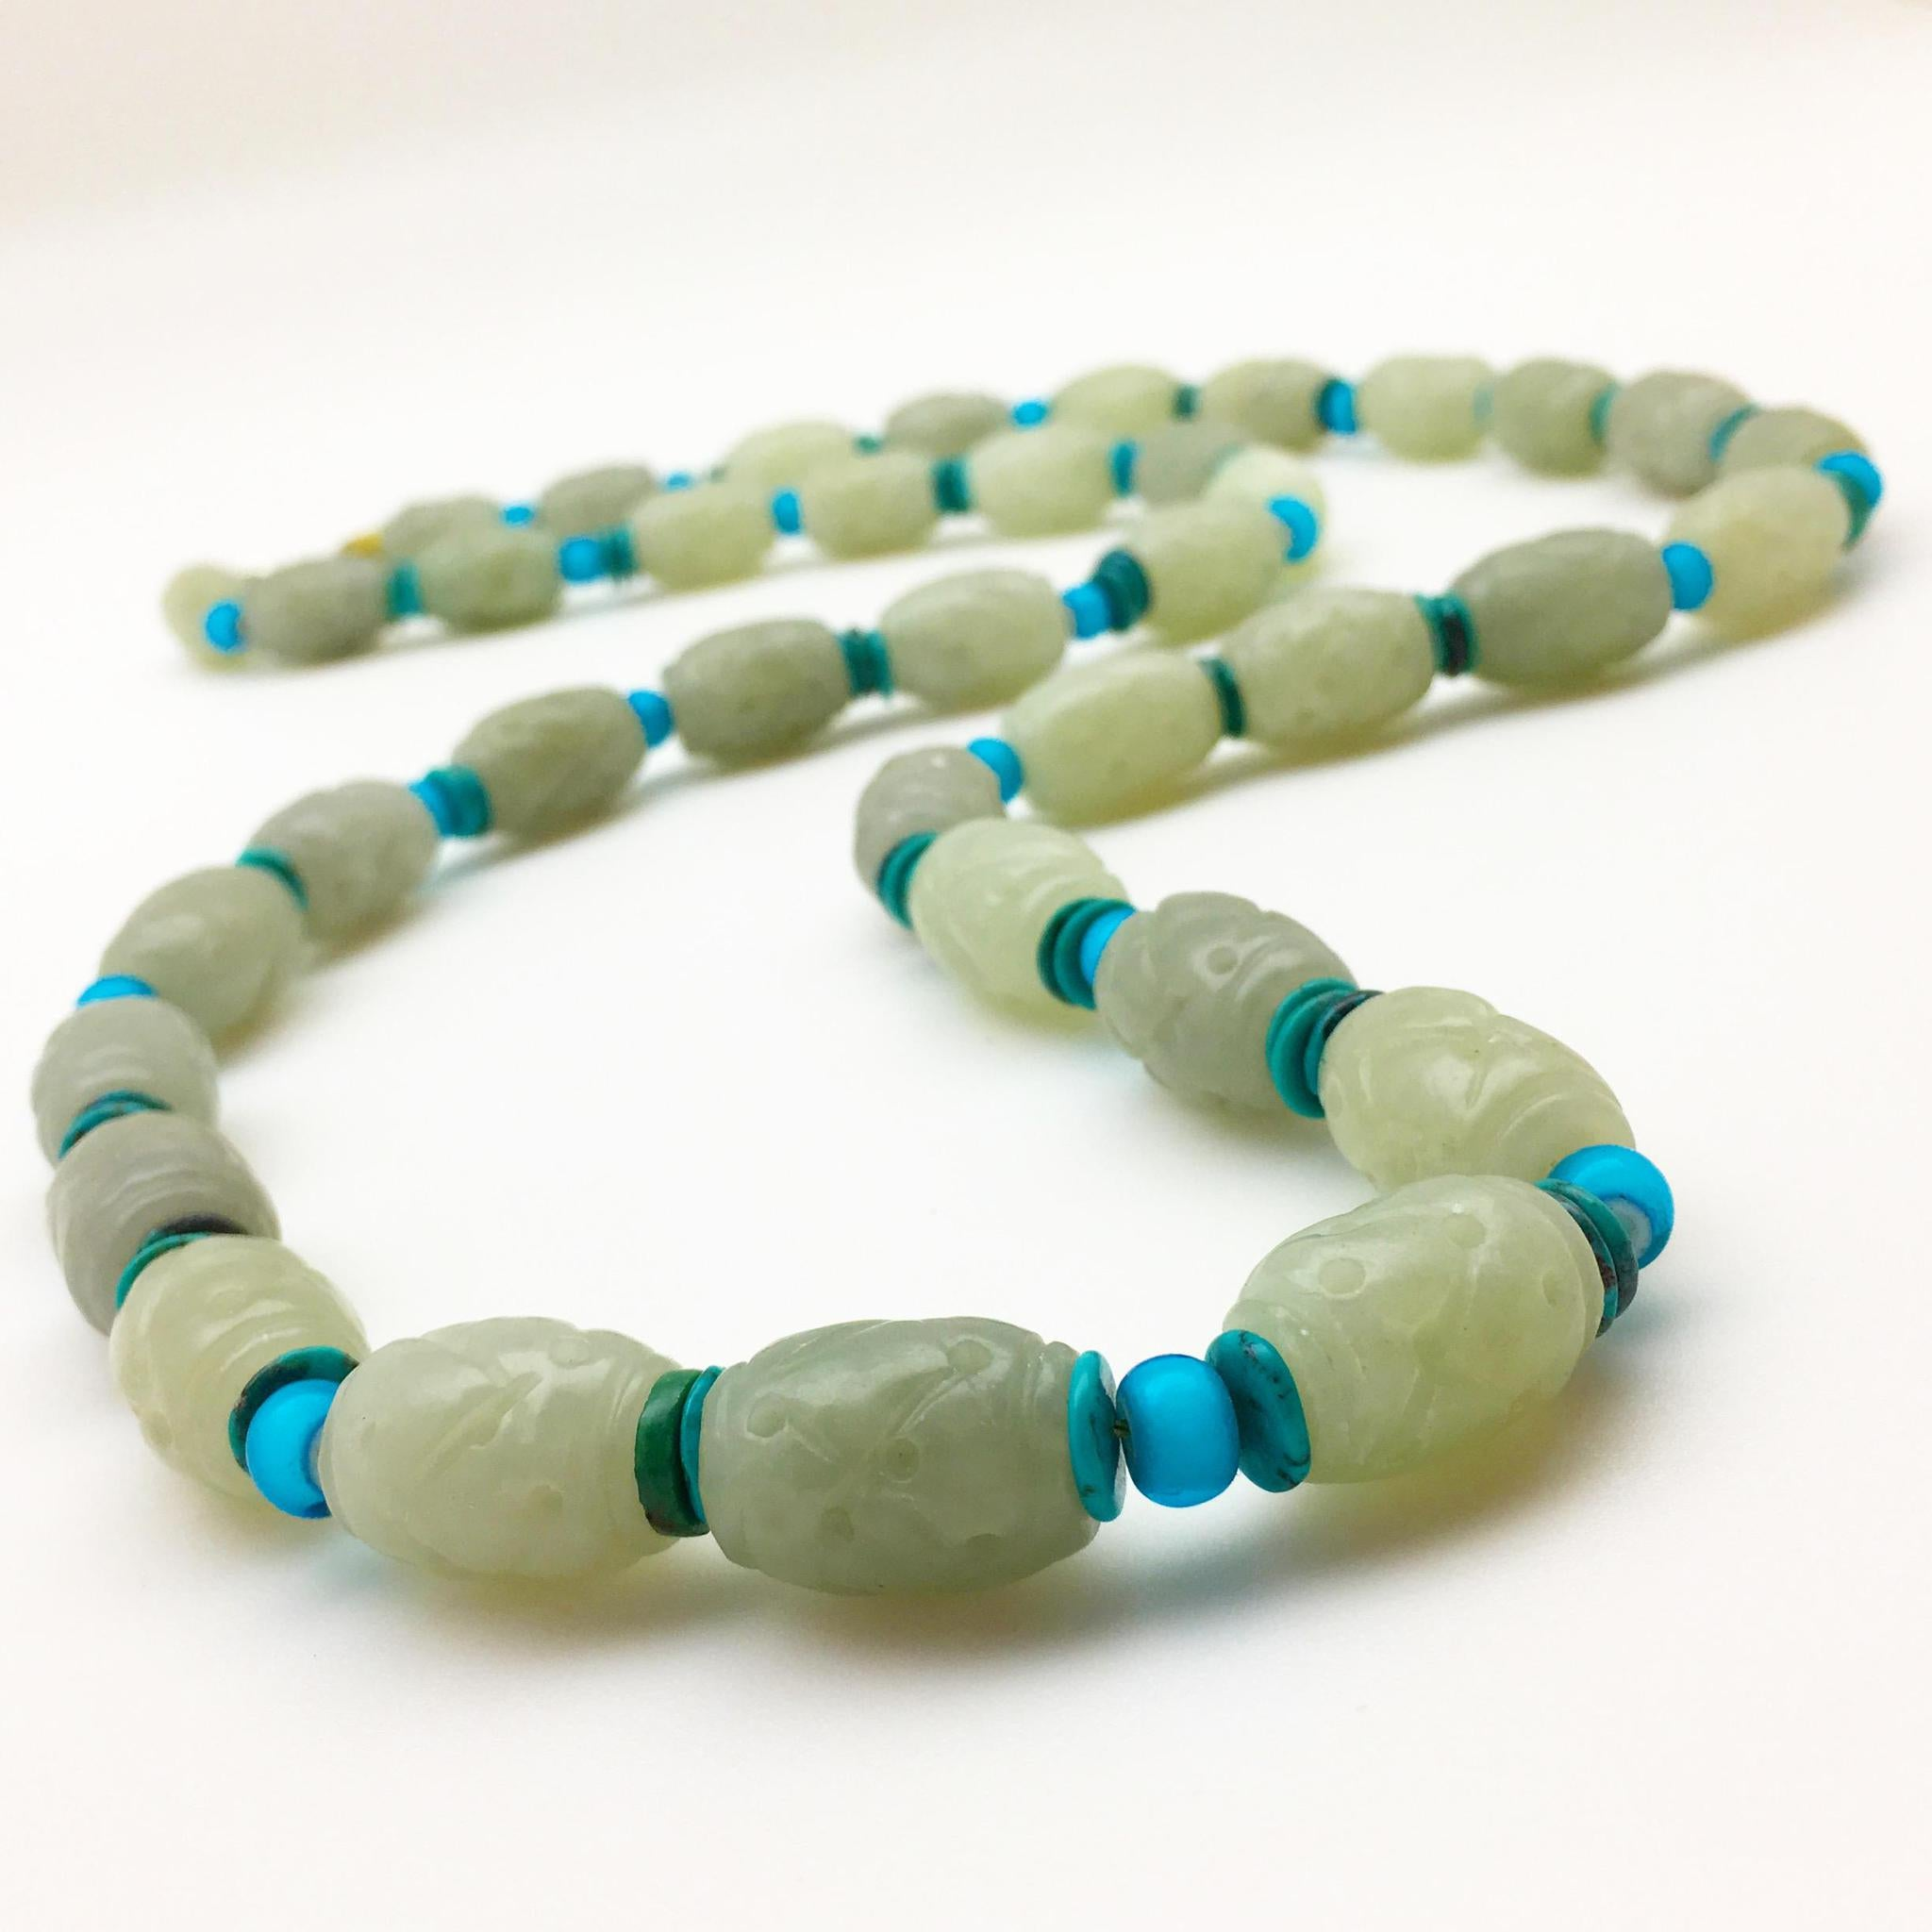 Necklace - Turquoise and Jade